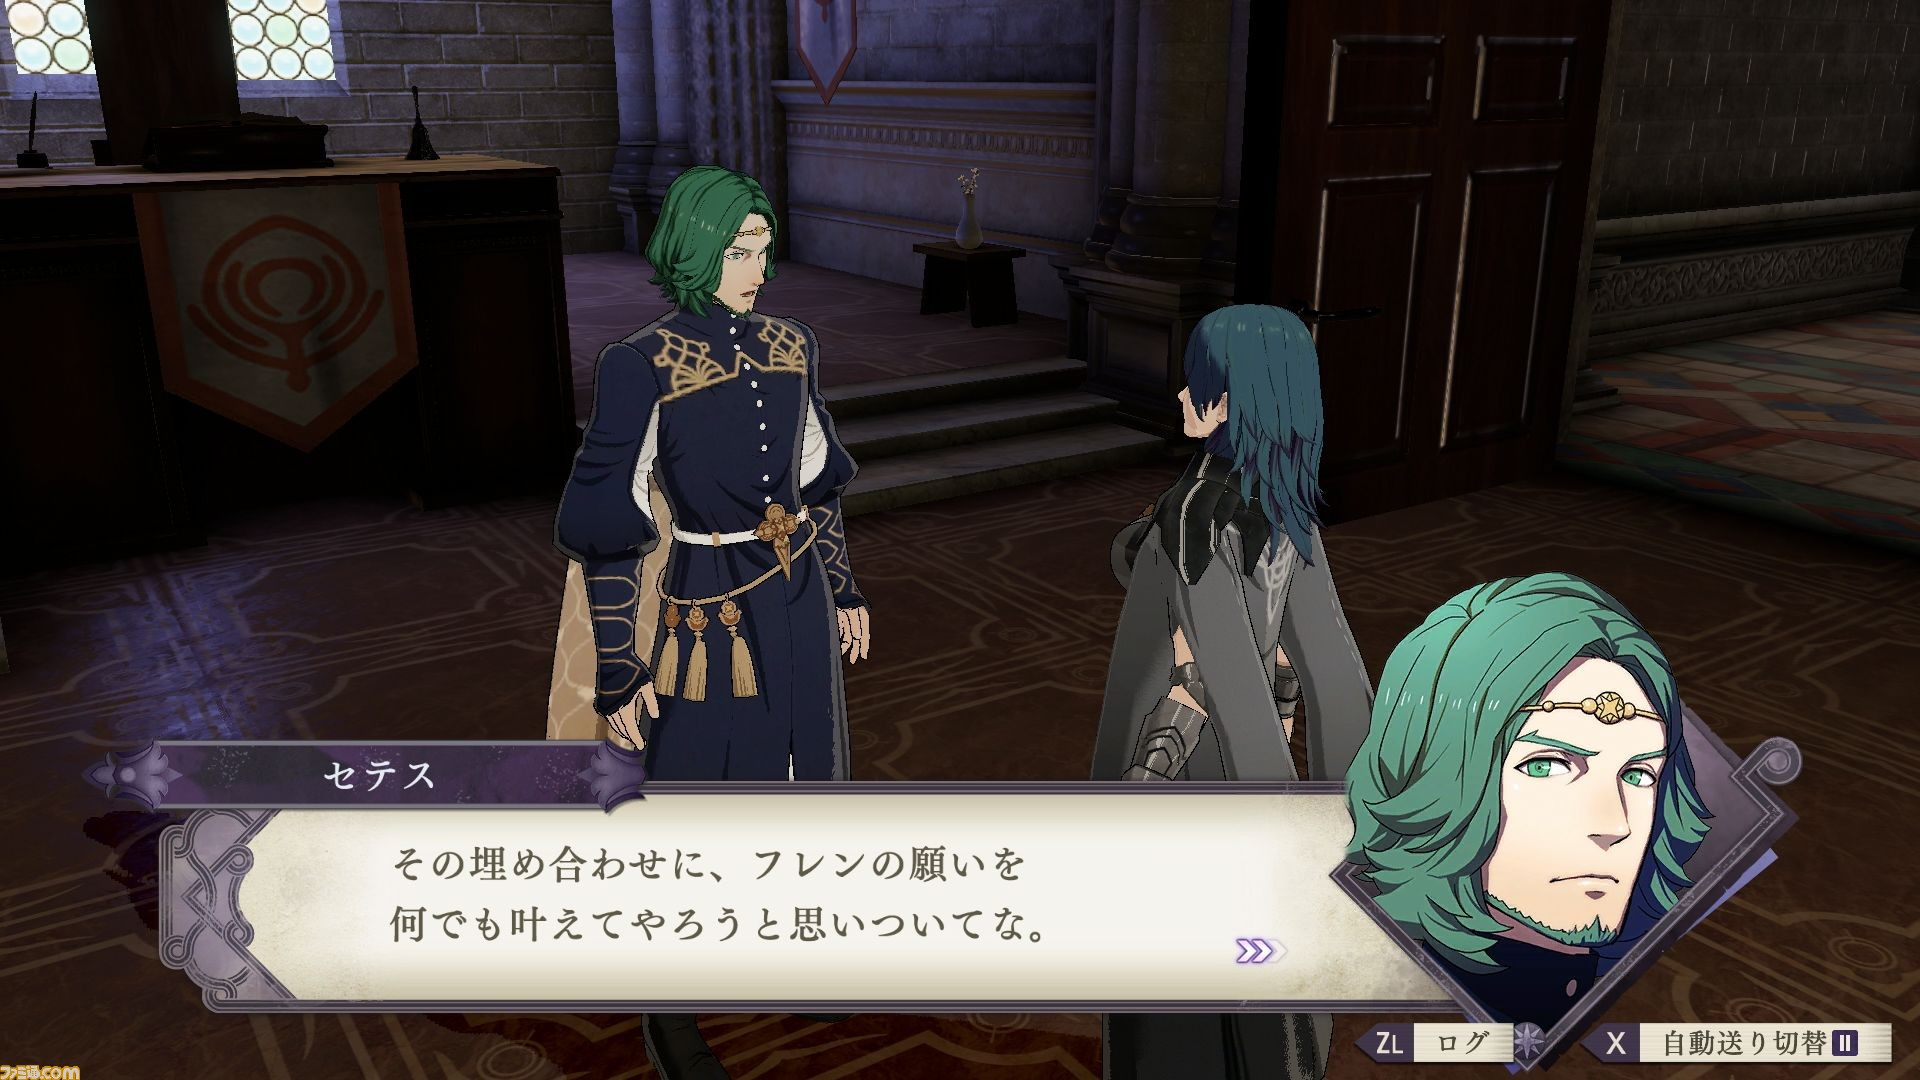 https://www.perfectly-nintendo.com/wp-content/uploads/sites/1/nggallery/fire-emblem-three-houses-11-07-2019/66.jpg